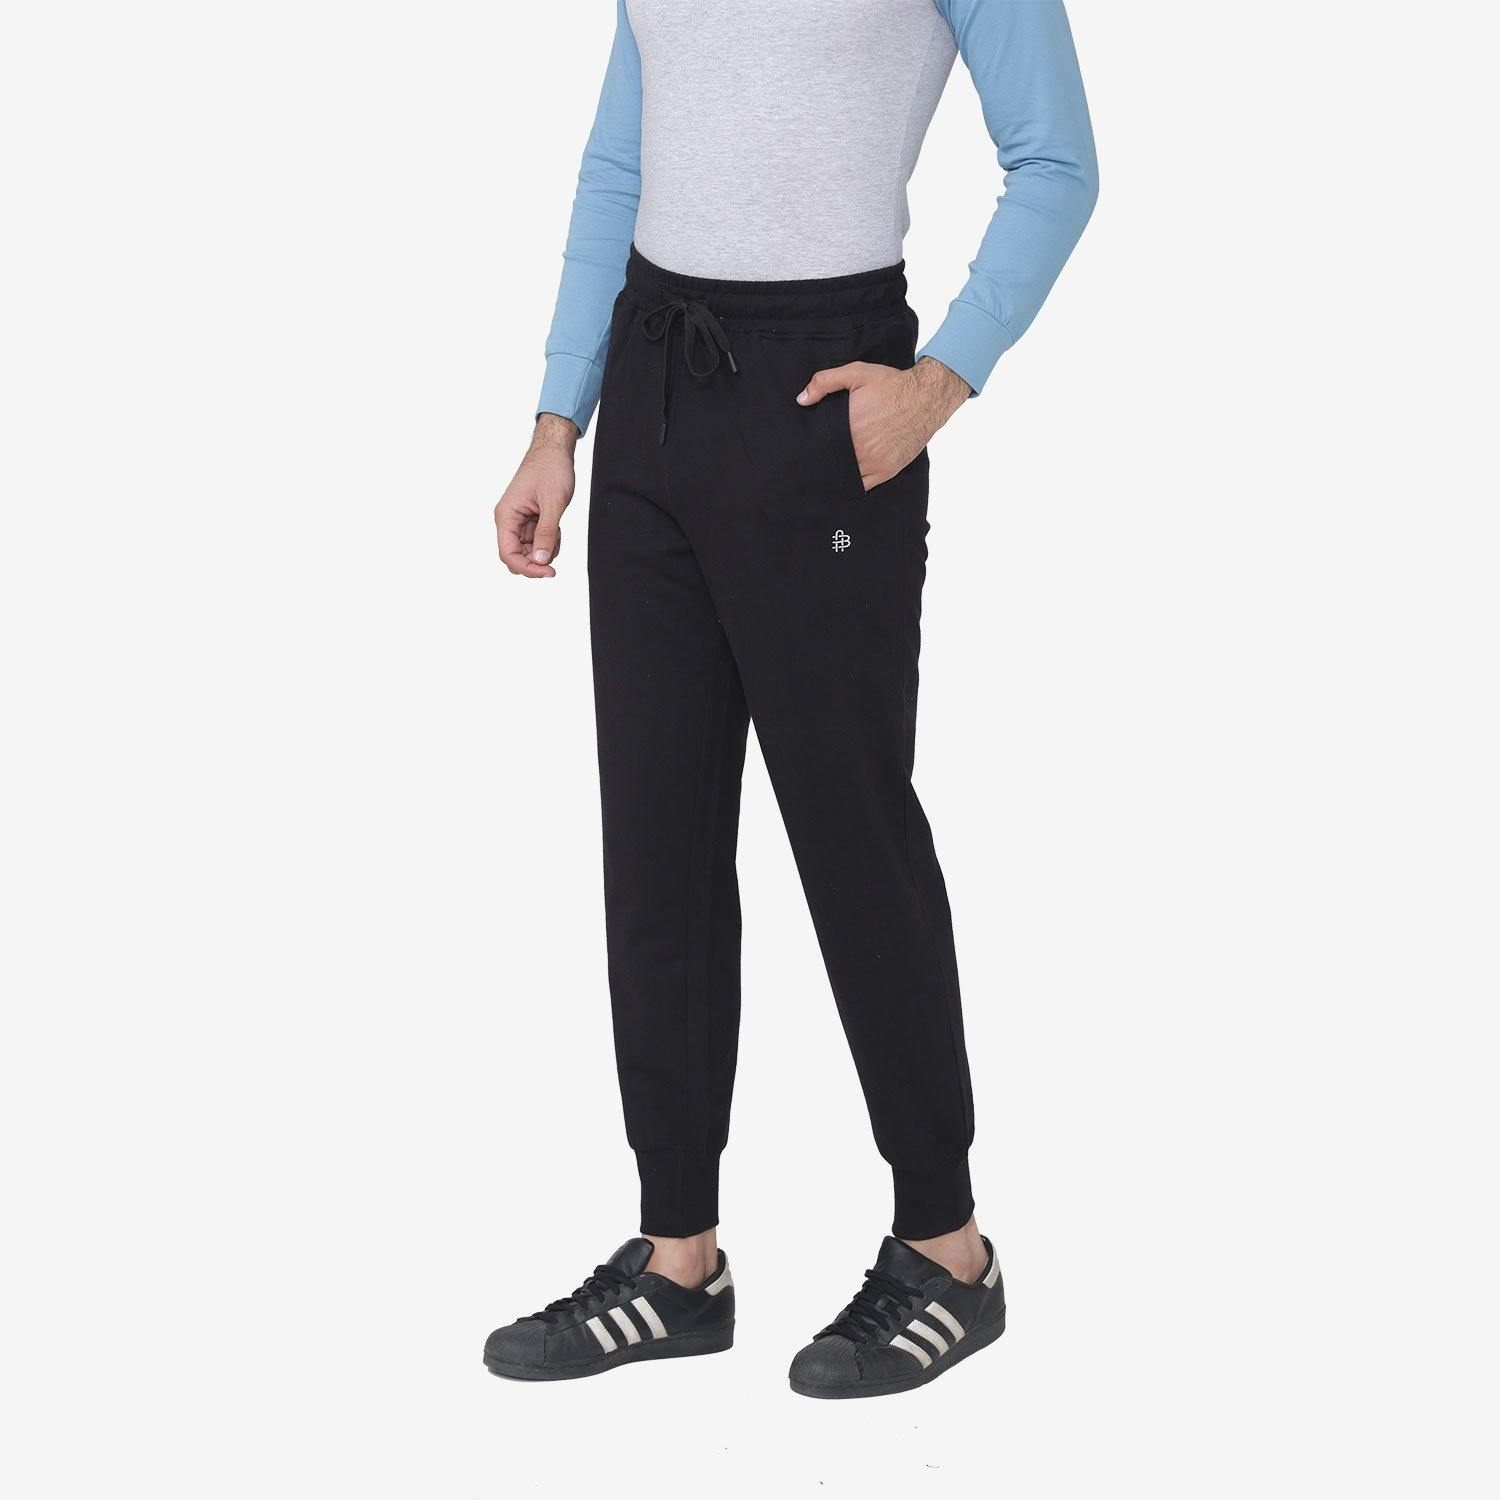 Men's Stretchable Casual Joggers Pants For Winter - Black